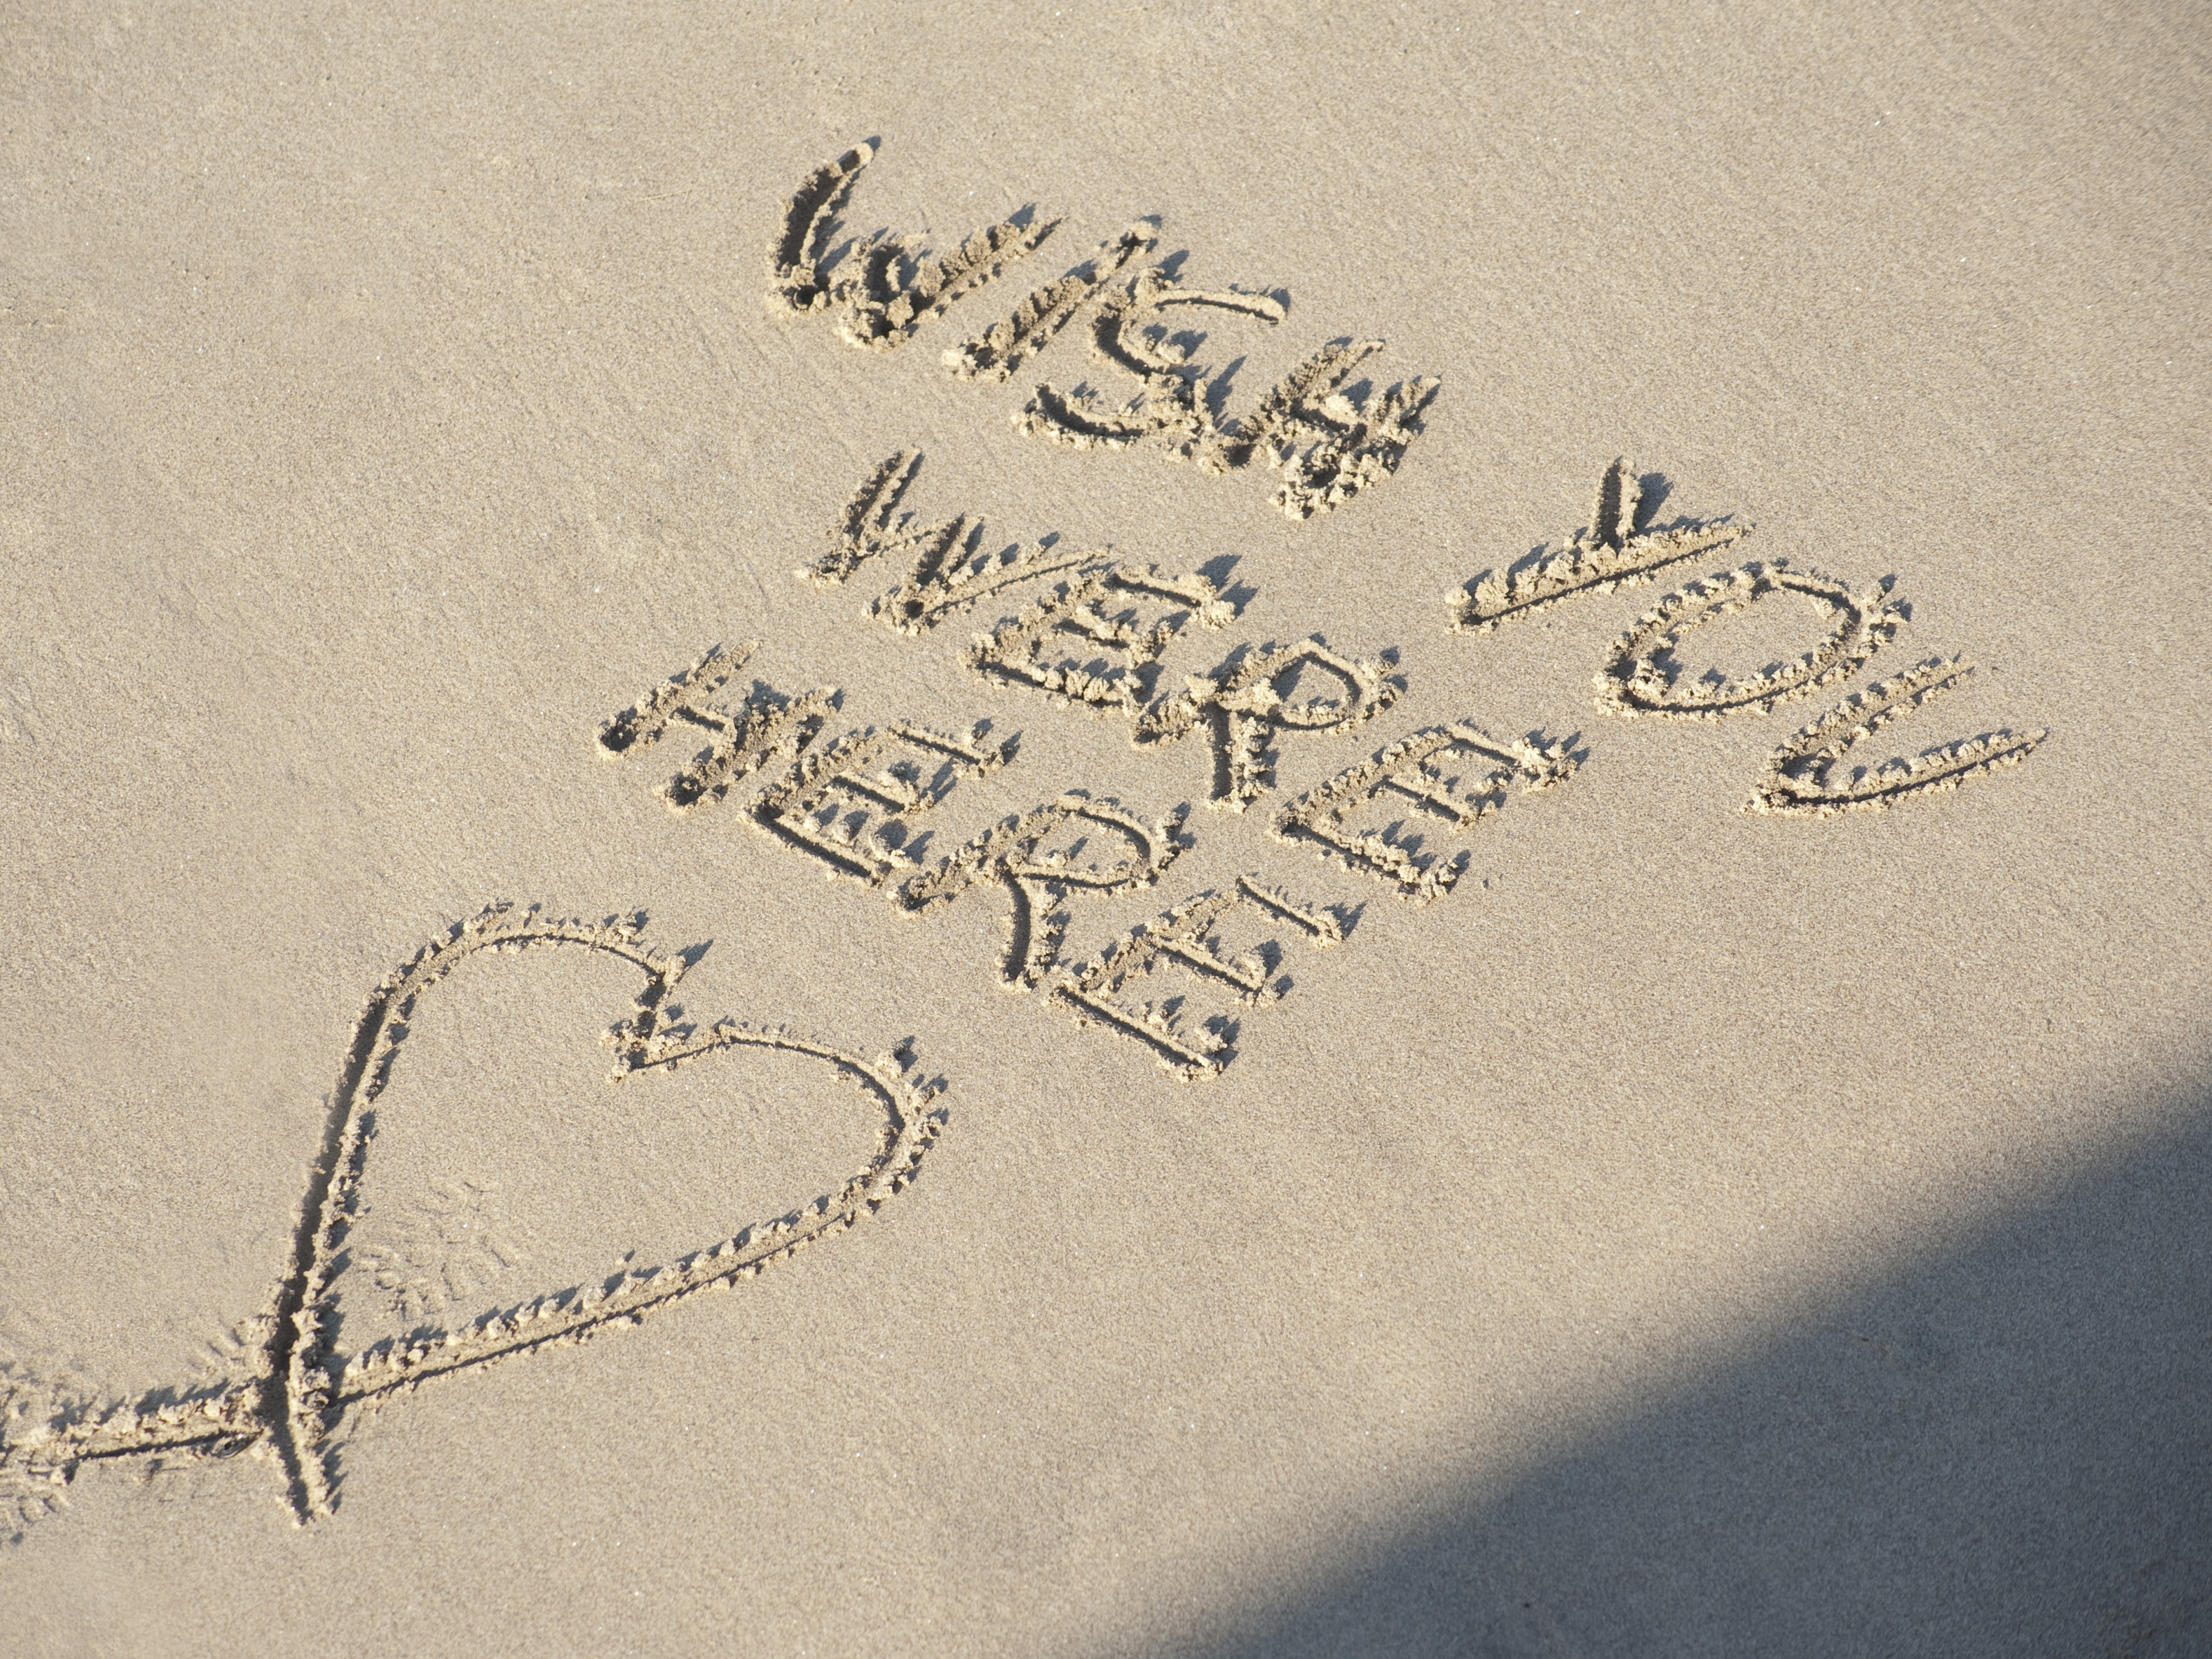 Wish You Were Here Quotes Entrancing Wish You Were Here On Beach Sand4235  Stockarch Free Stock Photos